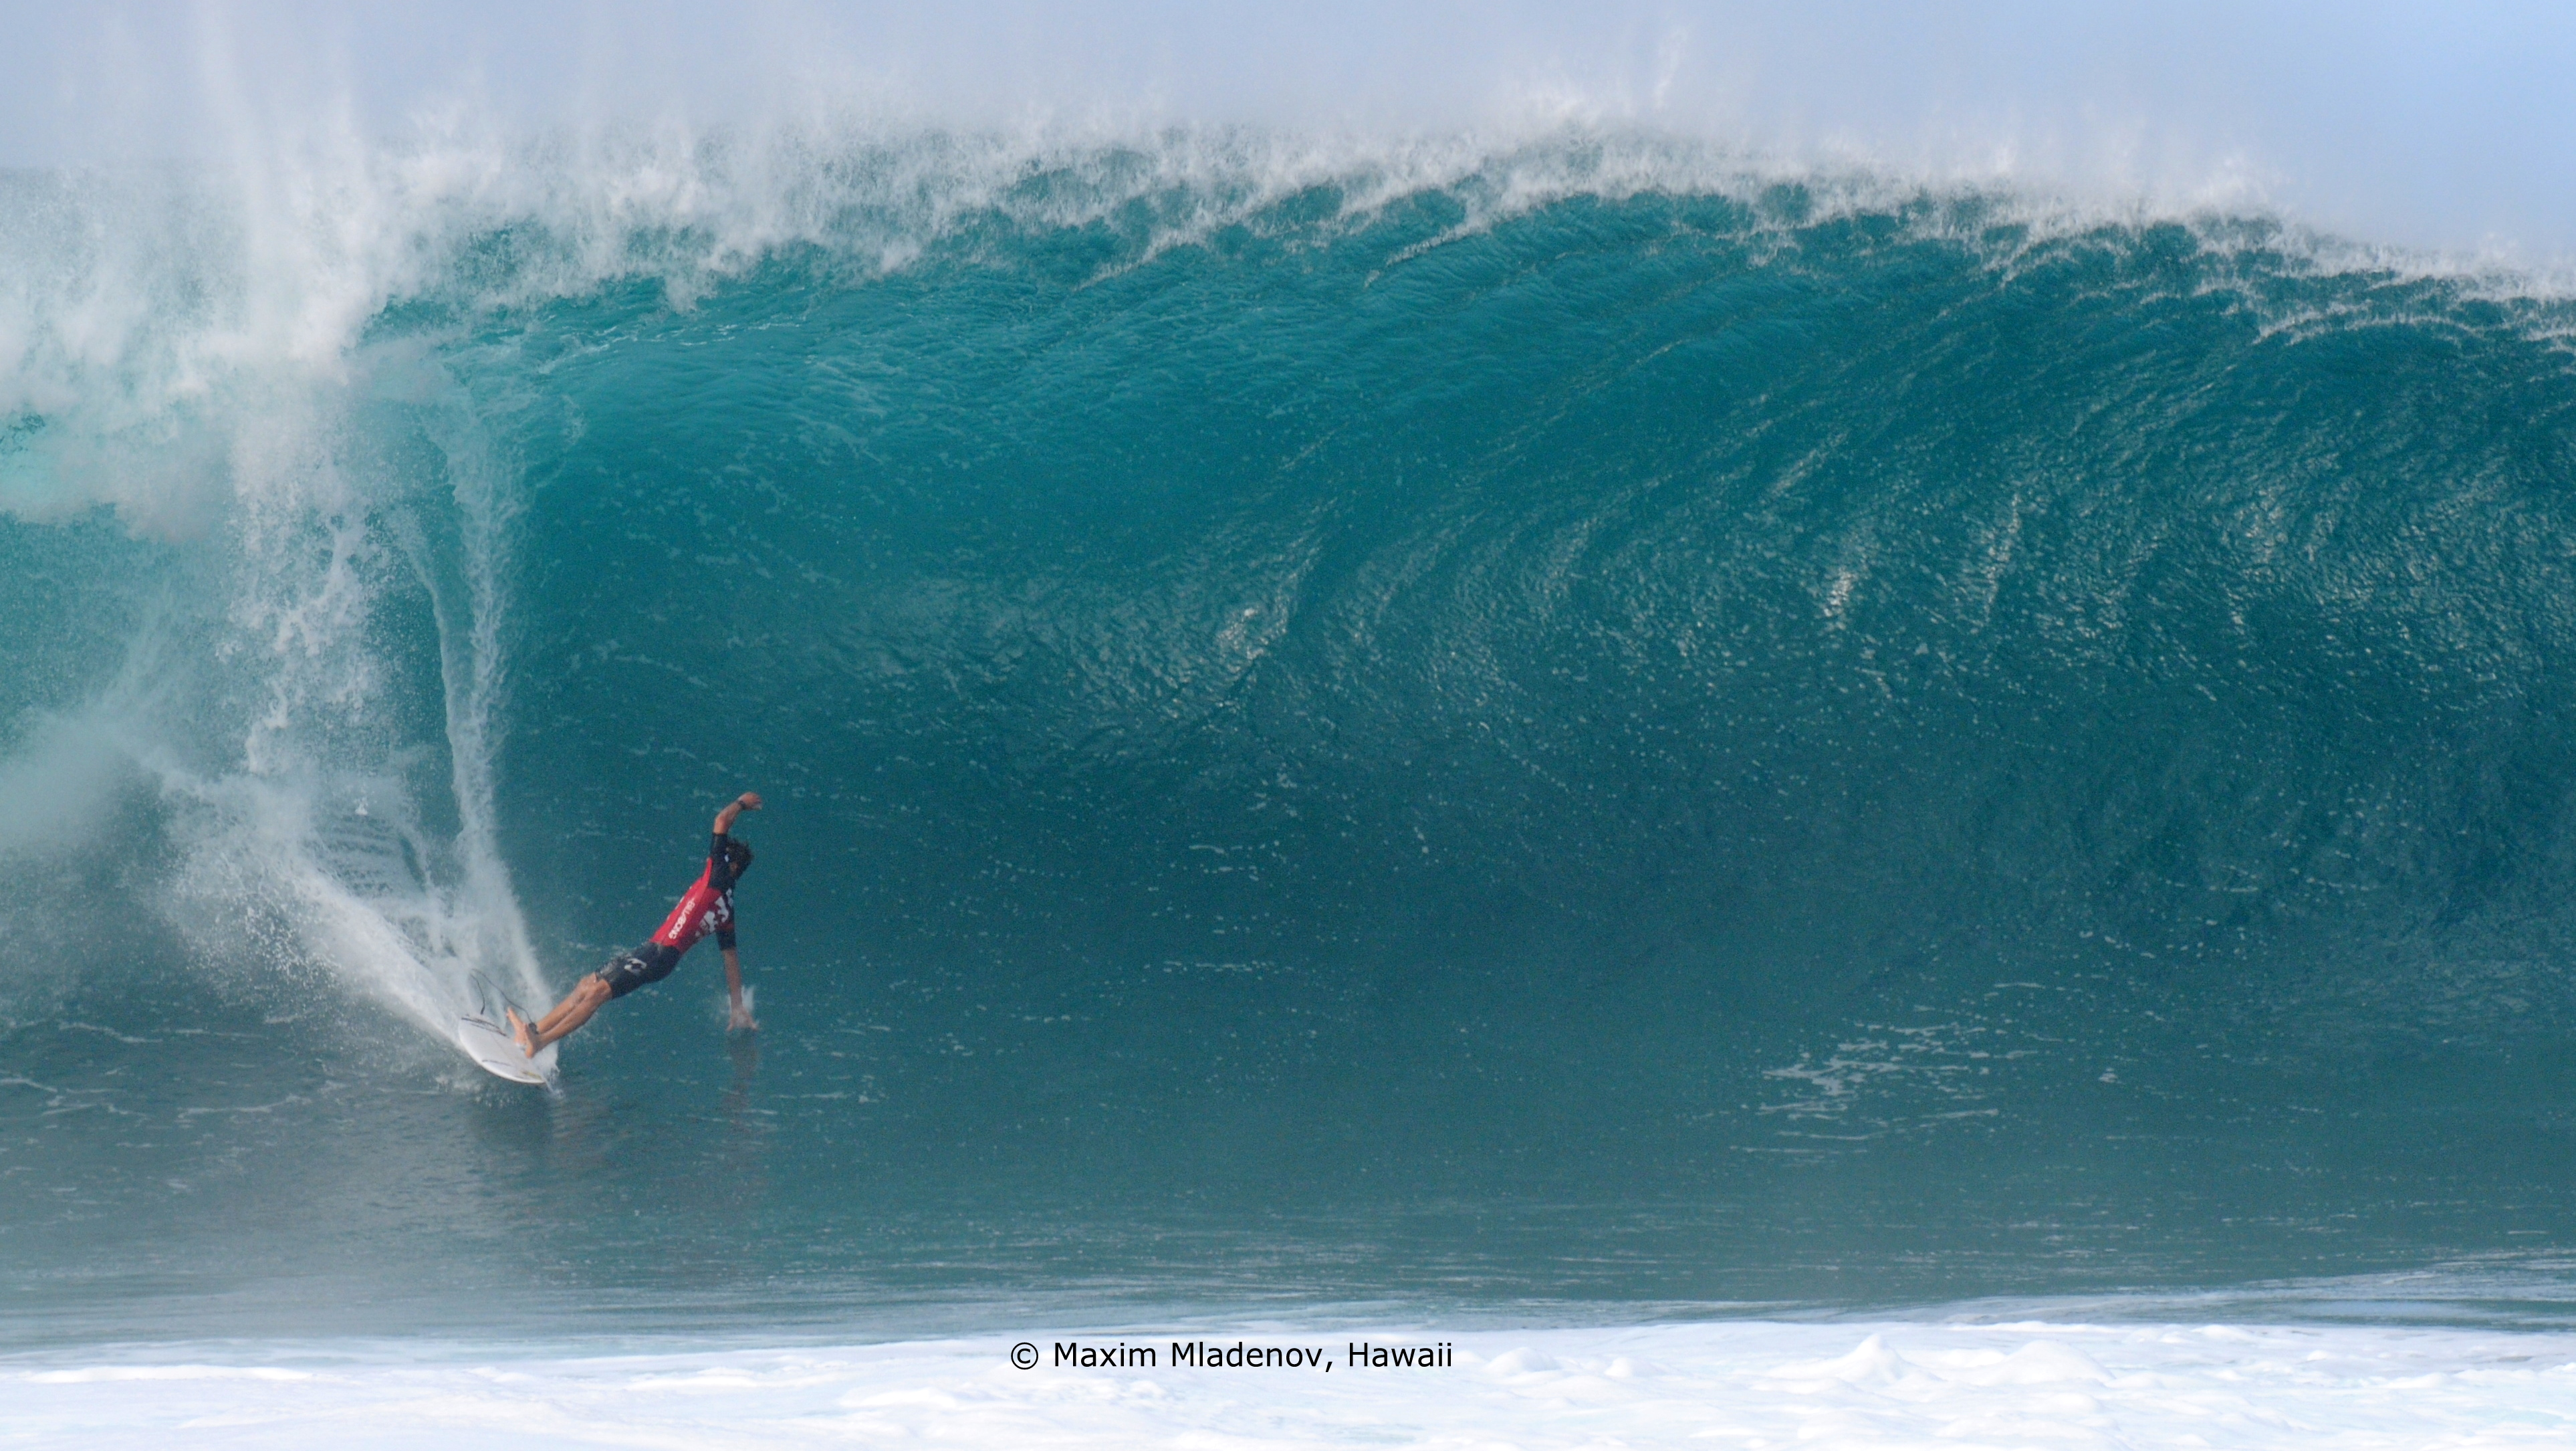 Wipe out 02 - Pipe Masters 2011 © Maxim Mladenov, Hawaii